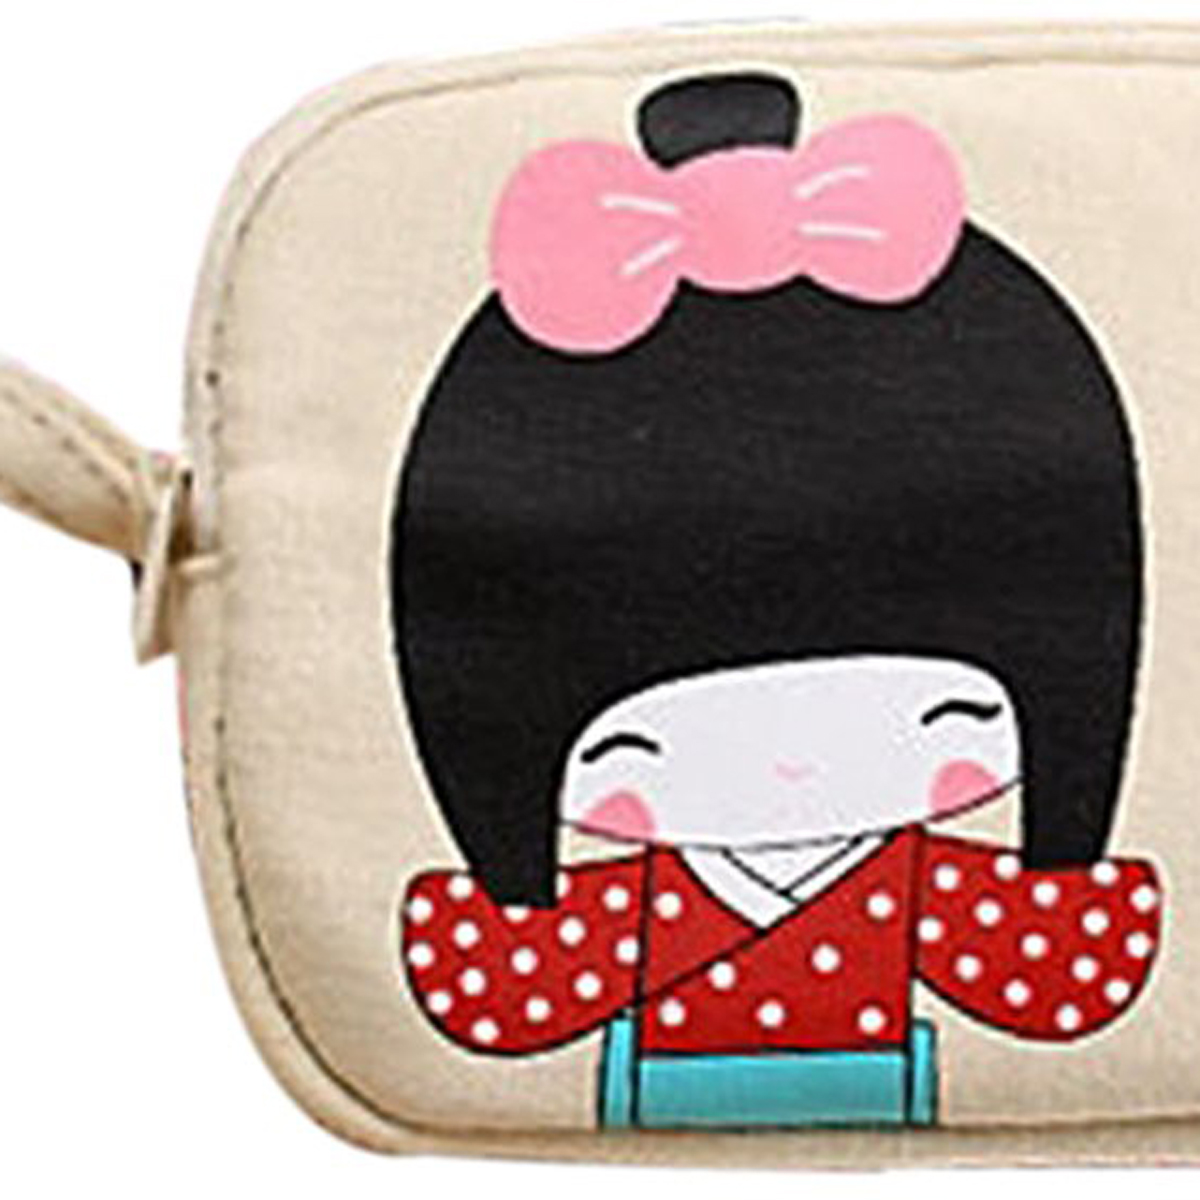 VSEN Wholesale Cute Japanese Girl Print Canvas Phone Bag Double Zipper Purse Coin Bag Off-White